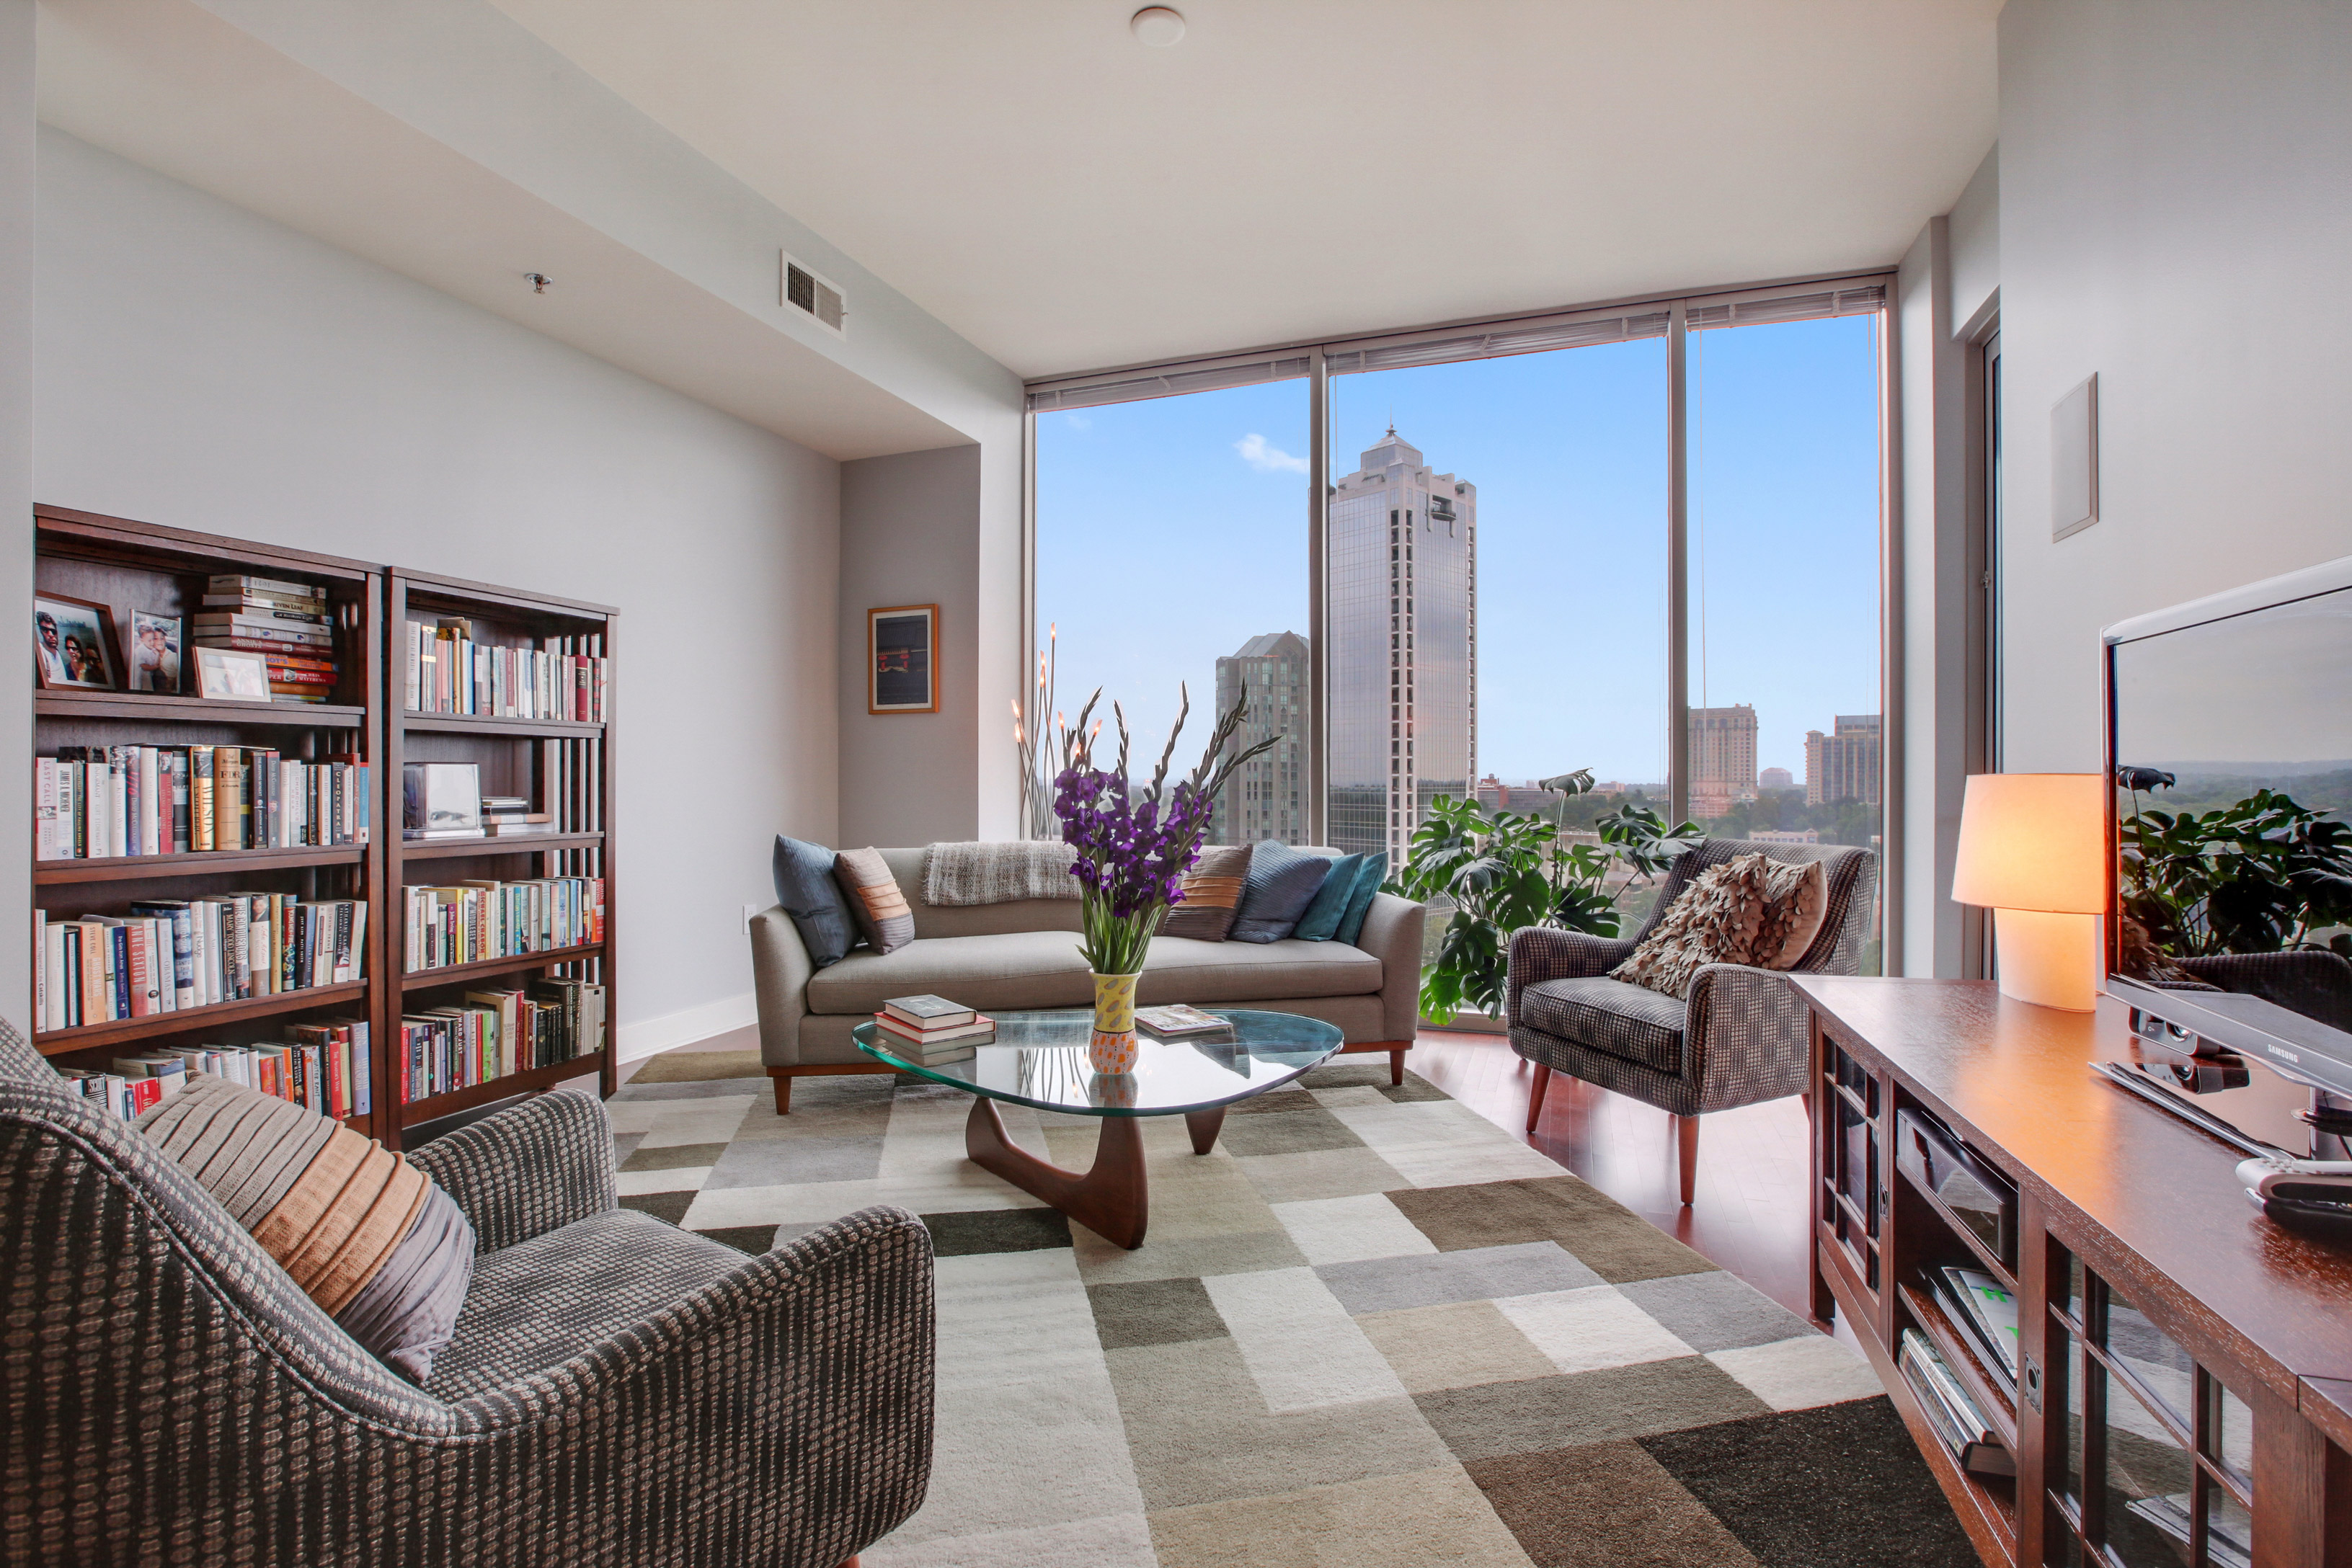 Condominio por un Venta en Live the dream with views you imagined in an unmatched location. 2795 Peachtree Road NE Atlanta, Georgia 30305 Estados Unidos